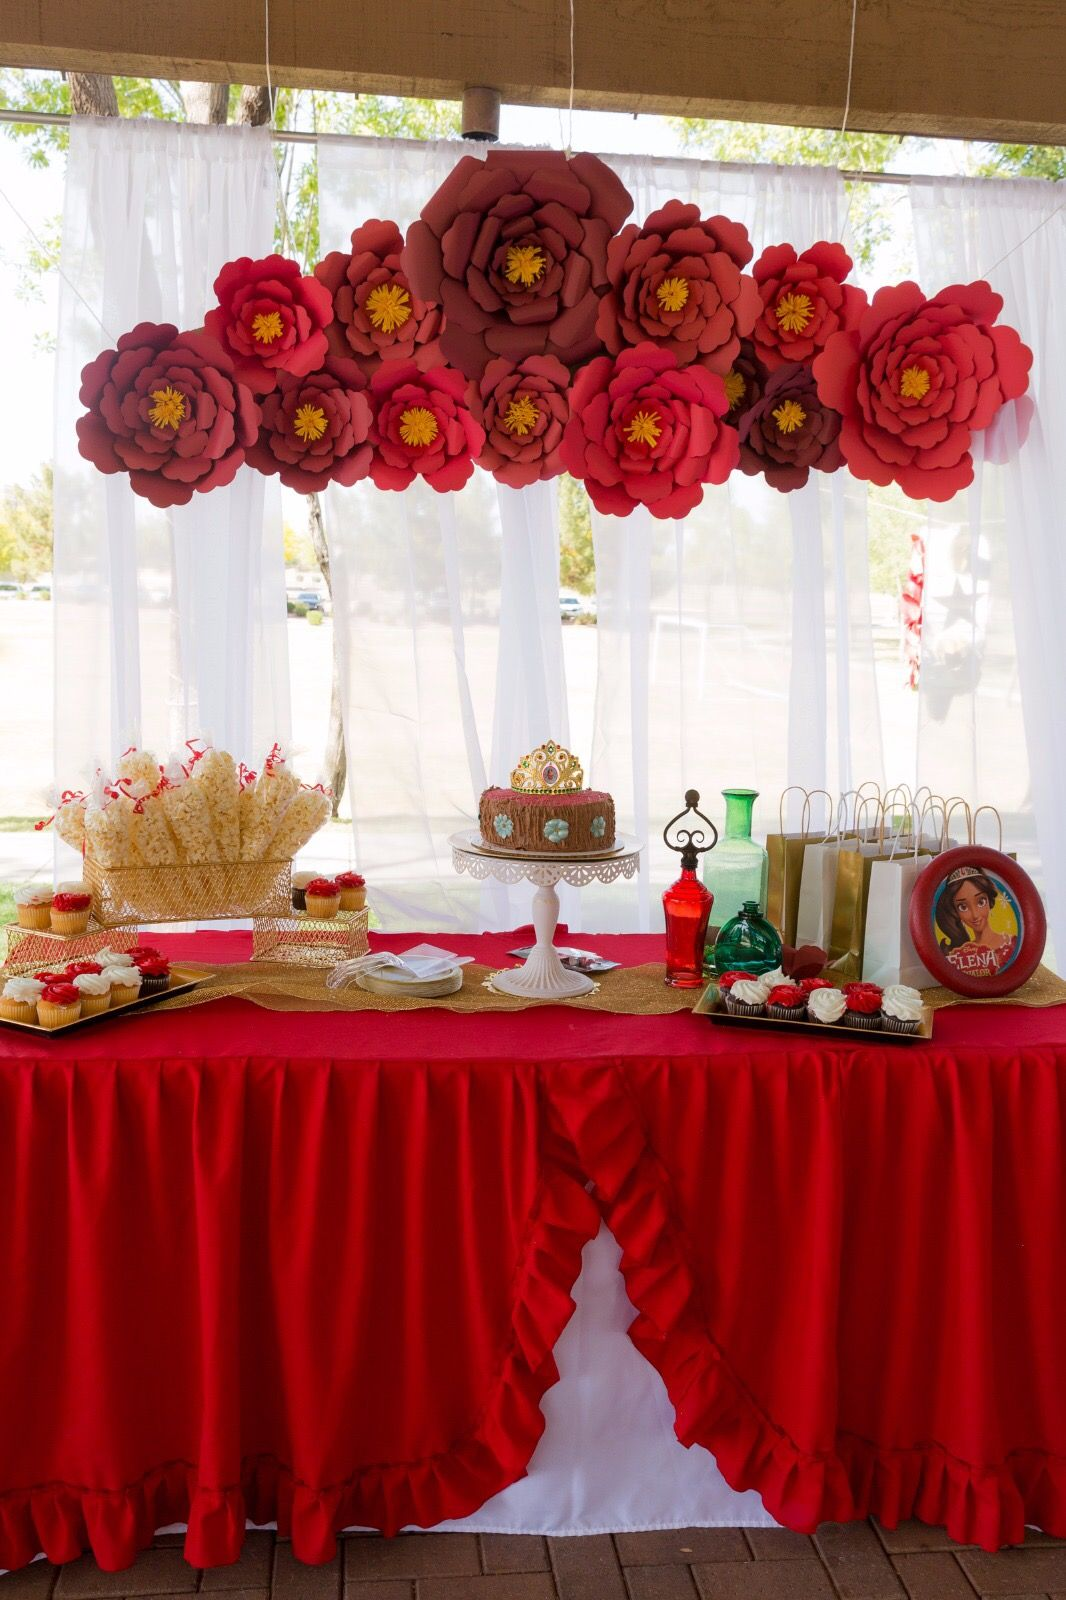 Elena Of Avalor Decorations Diy Birthday 5th Party Ideas Princess Centerpieces